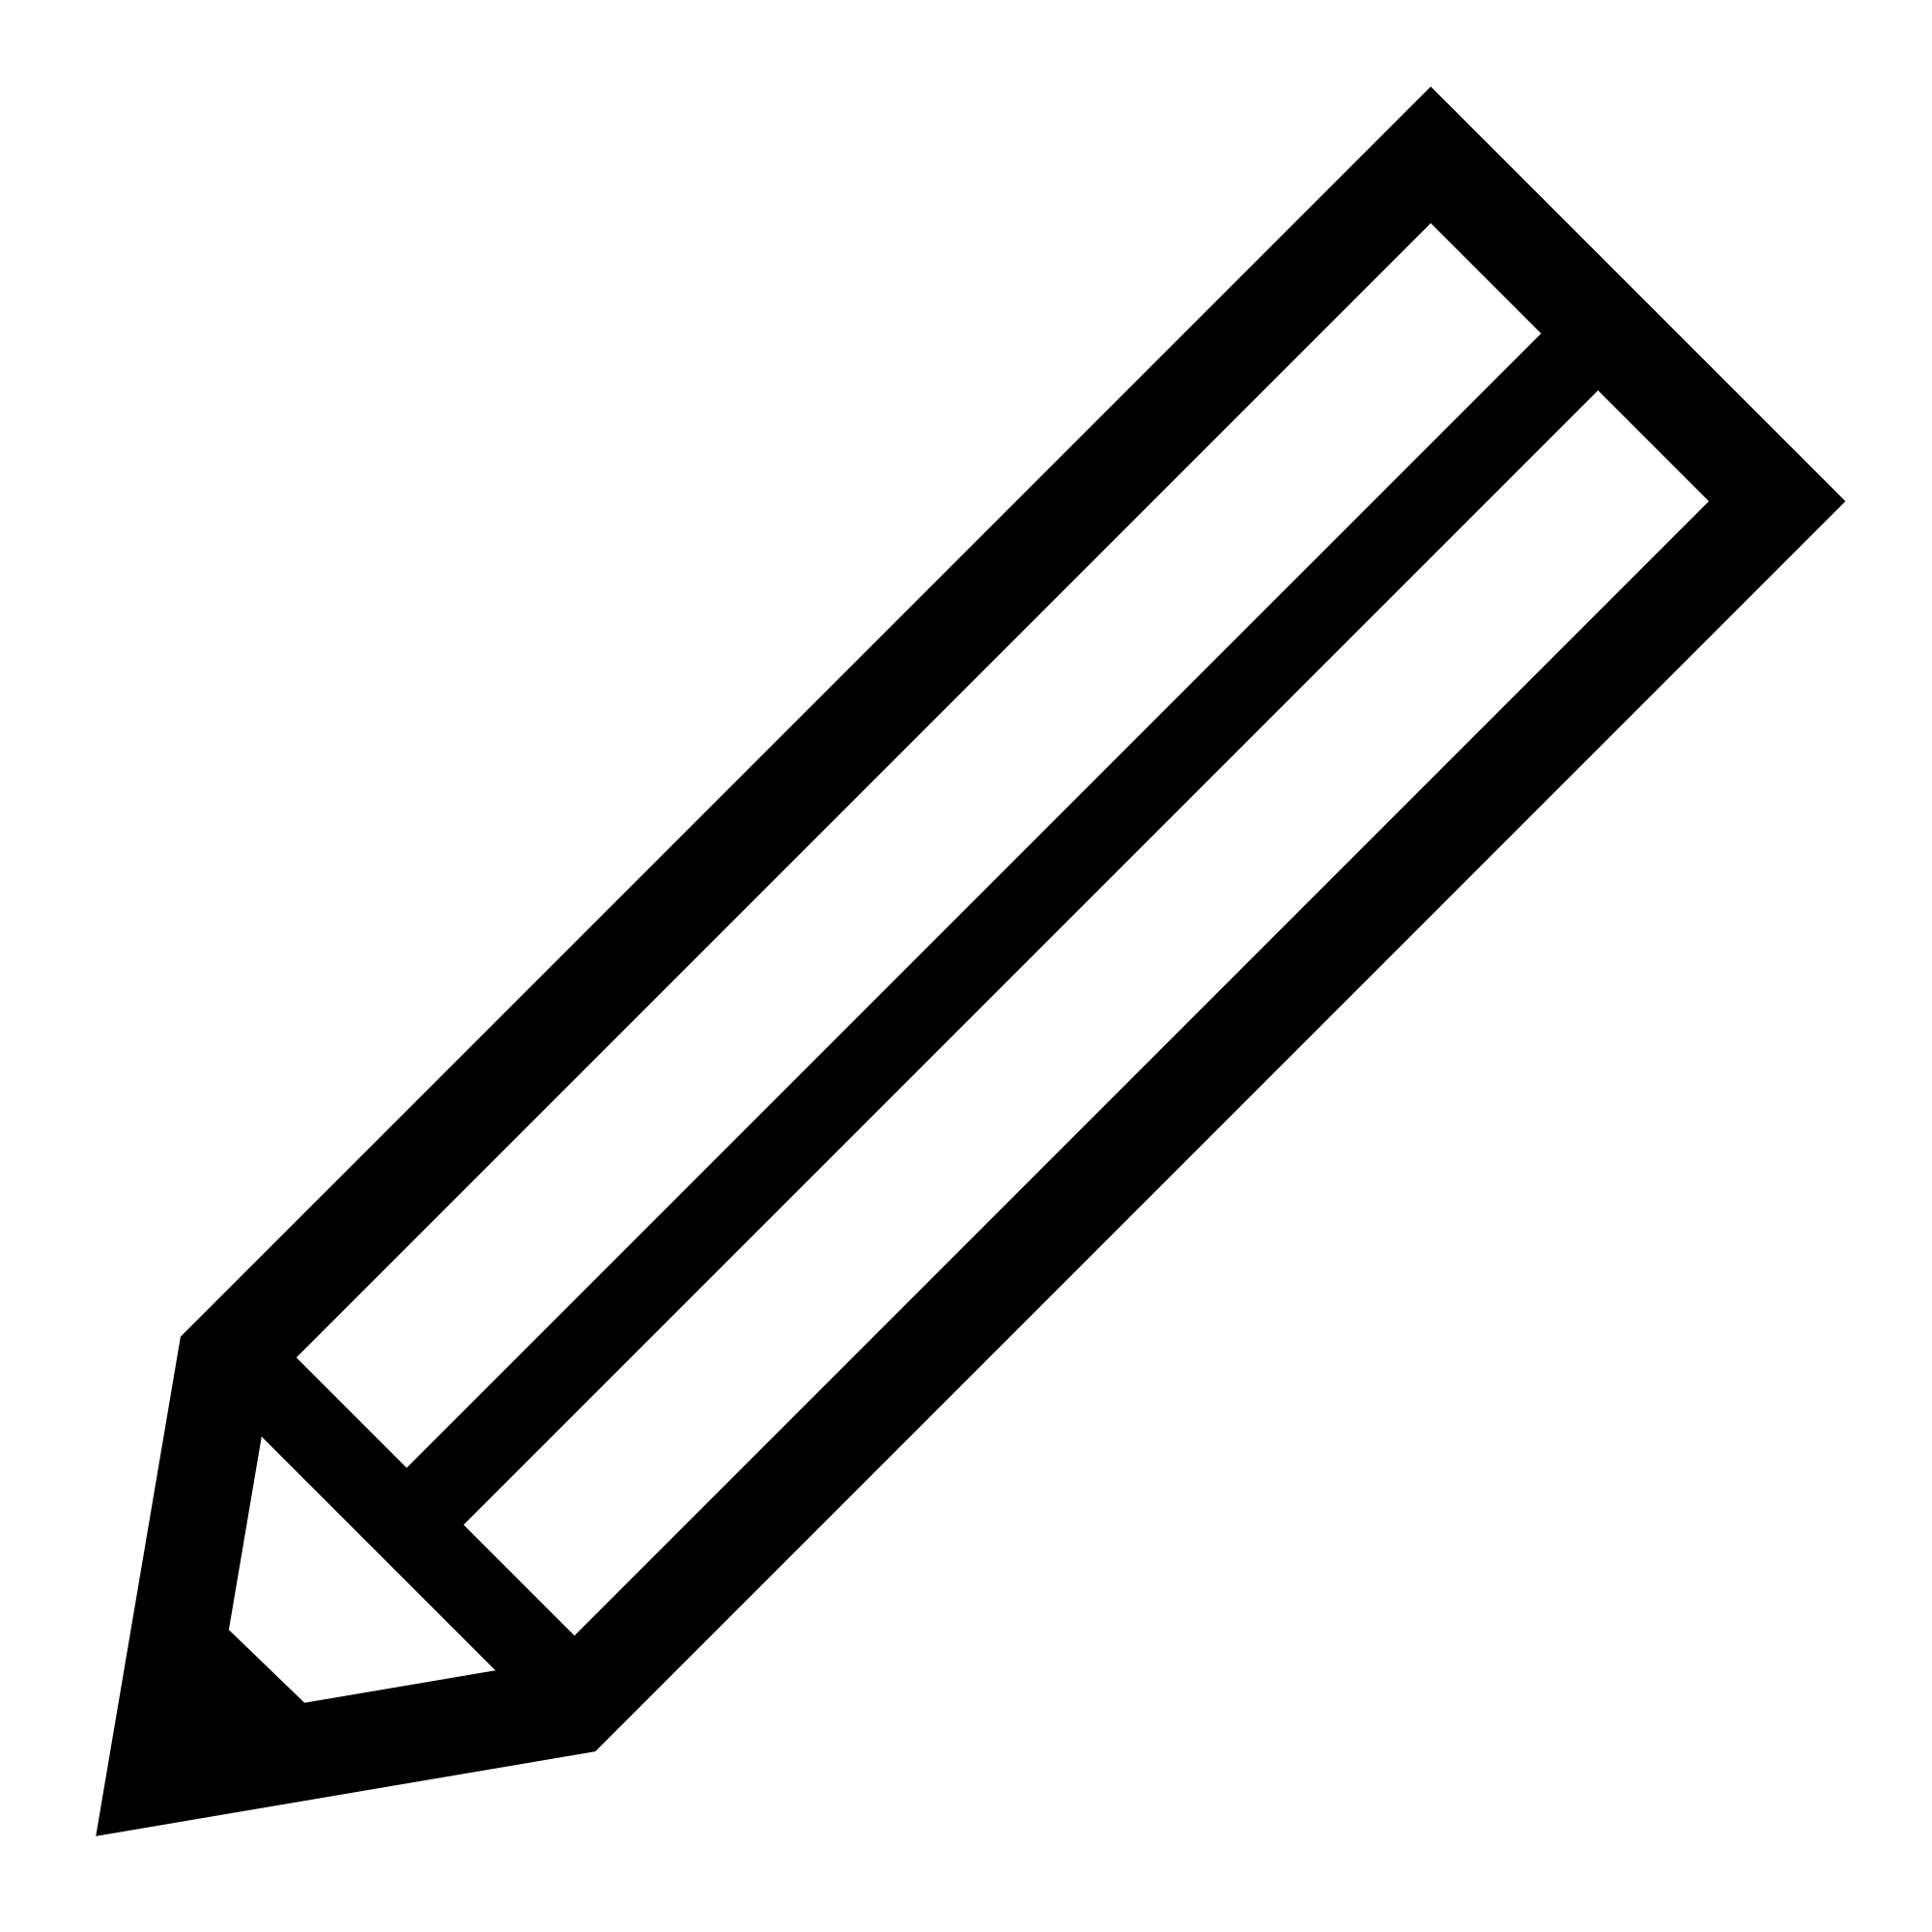 Black pencil png. File svg wikimedia commons